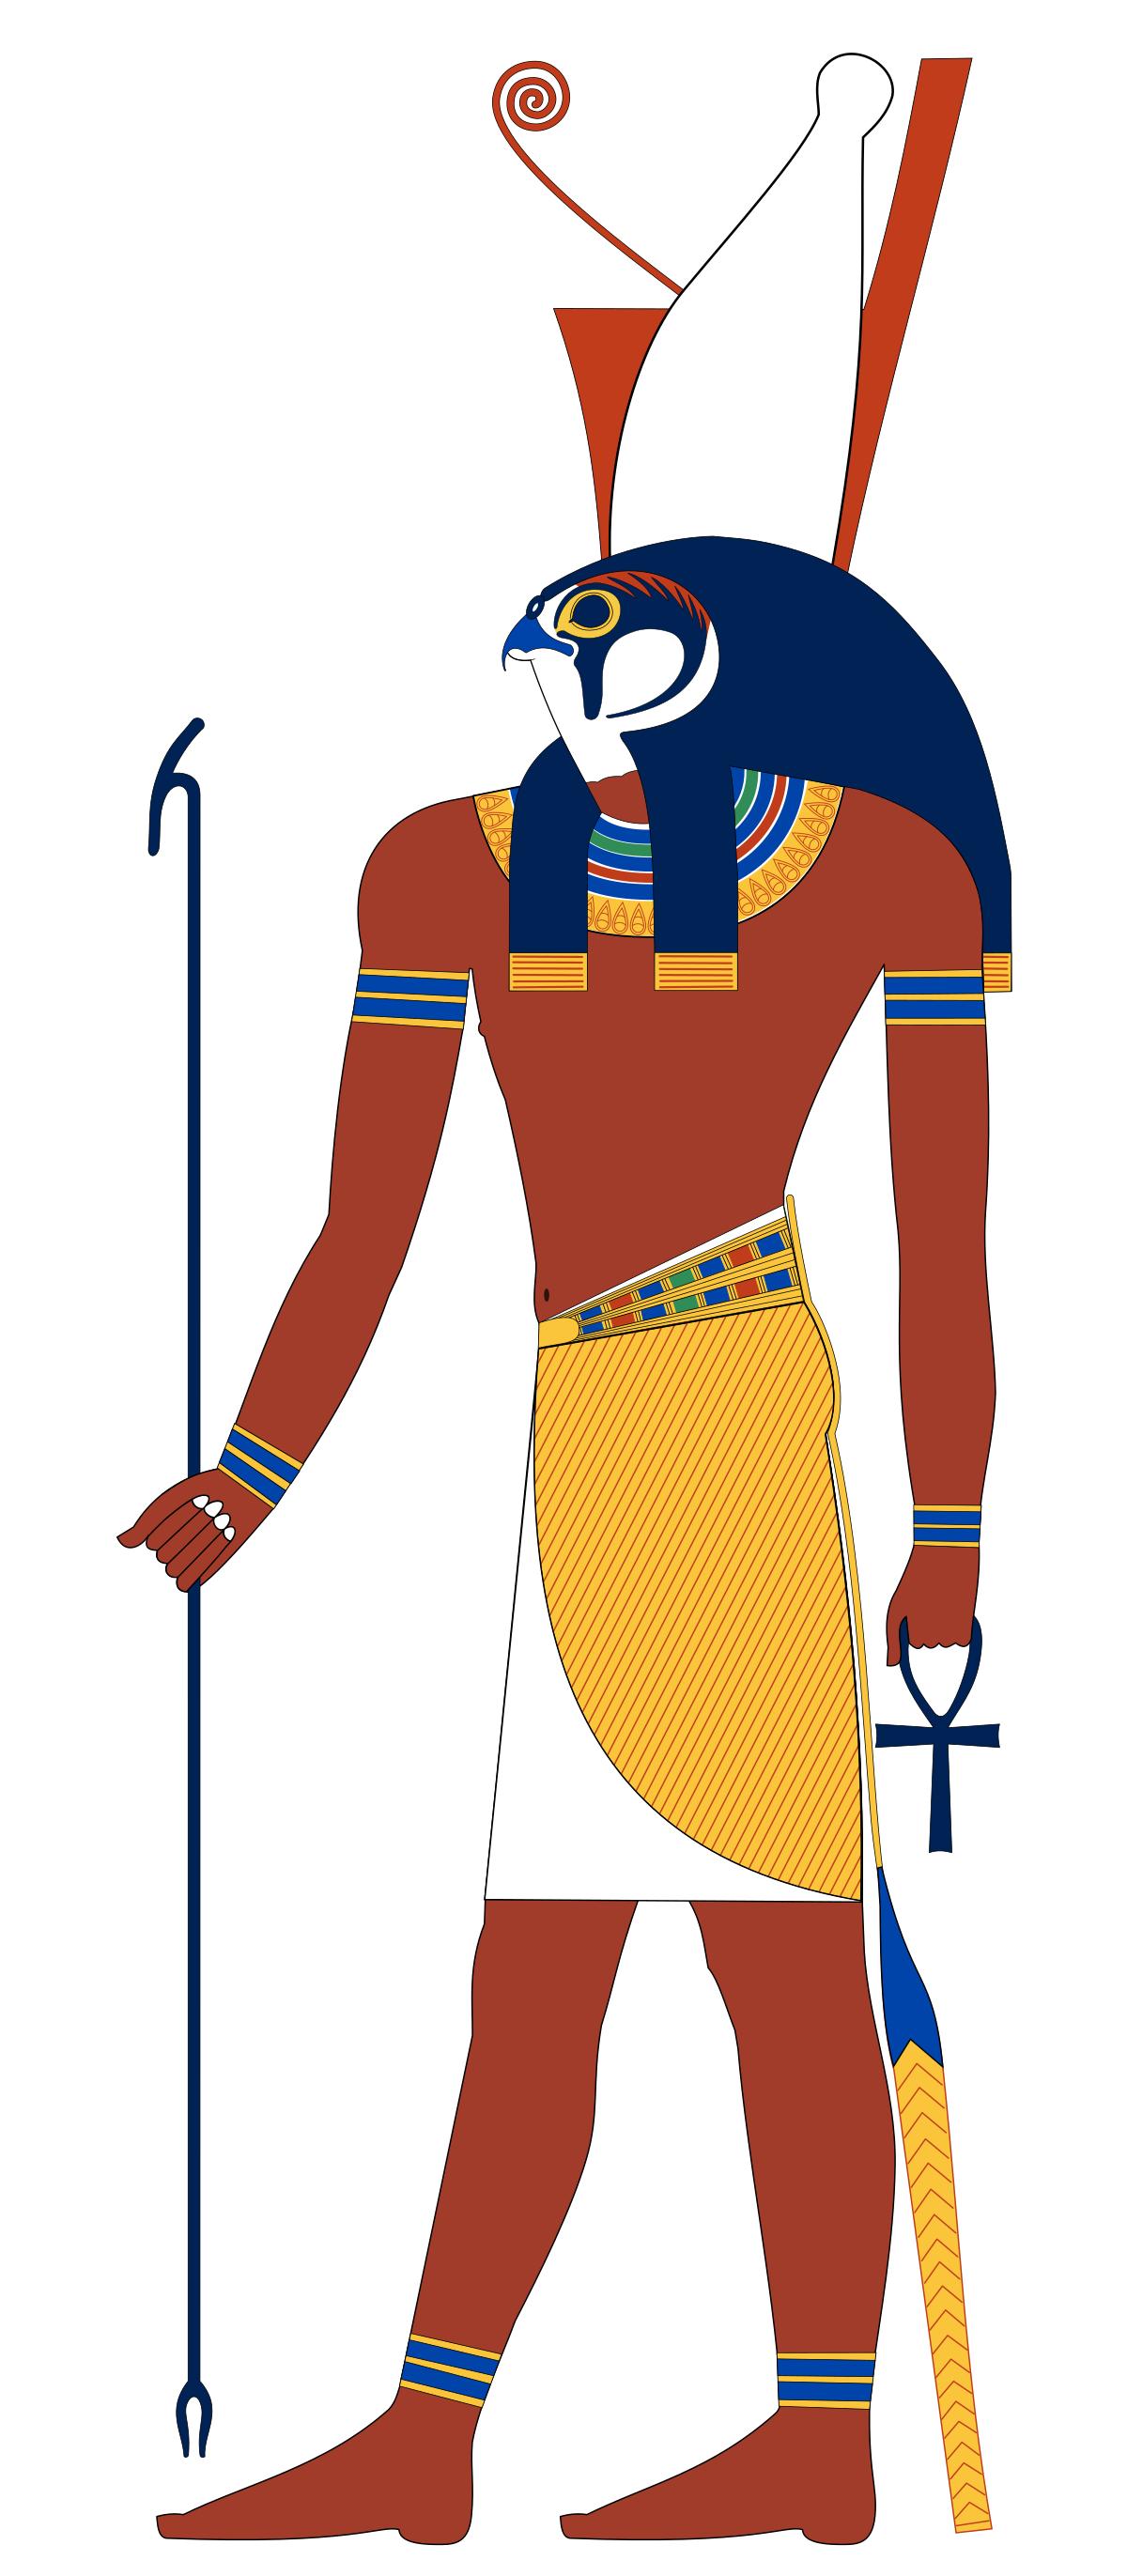 Horus wikipedia . Conflict clipart contention